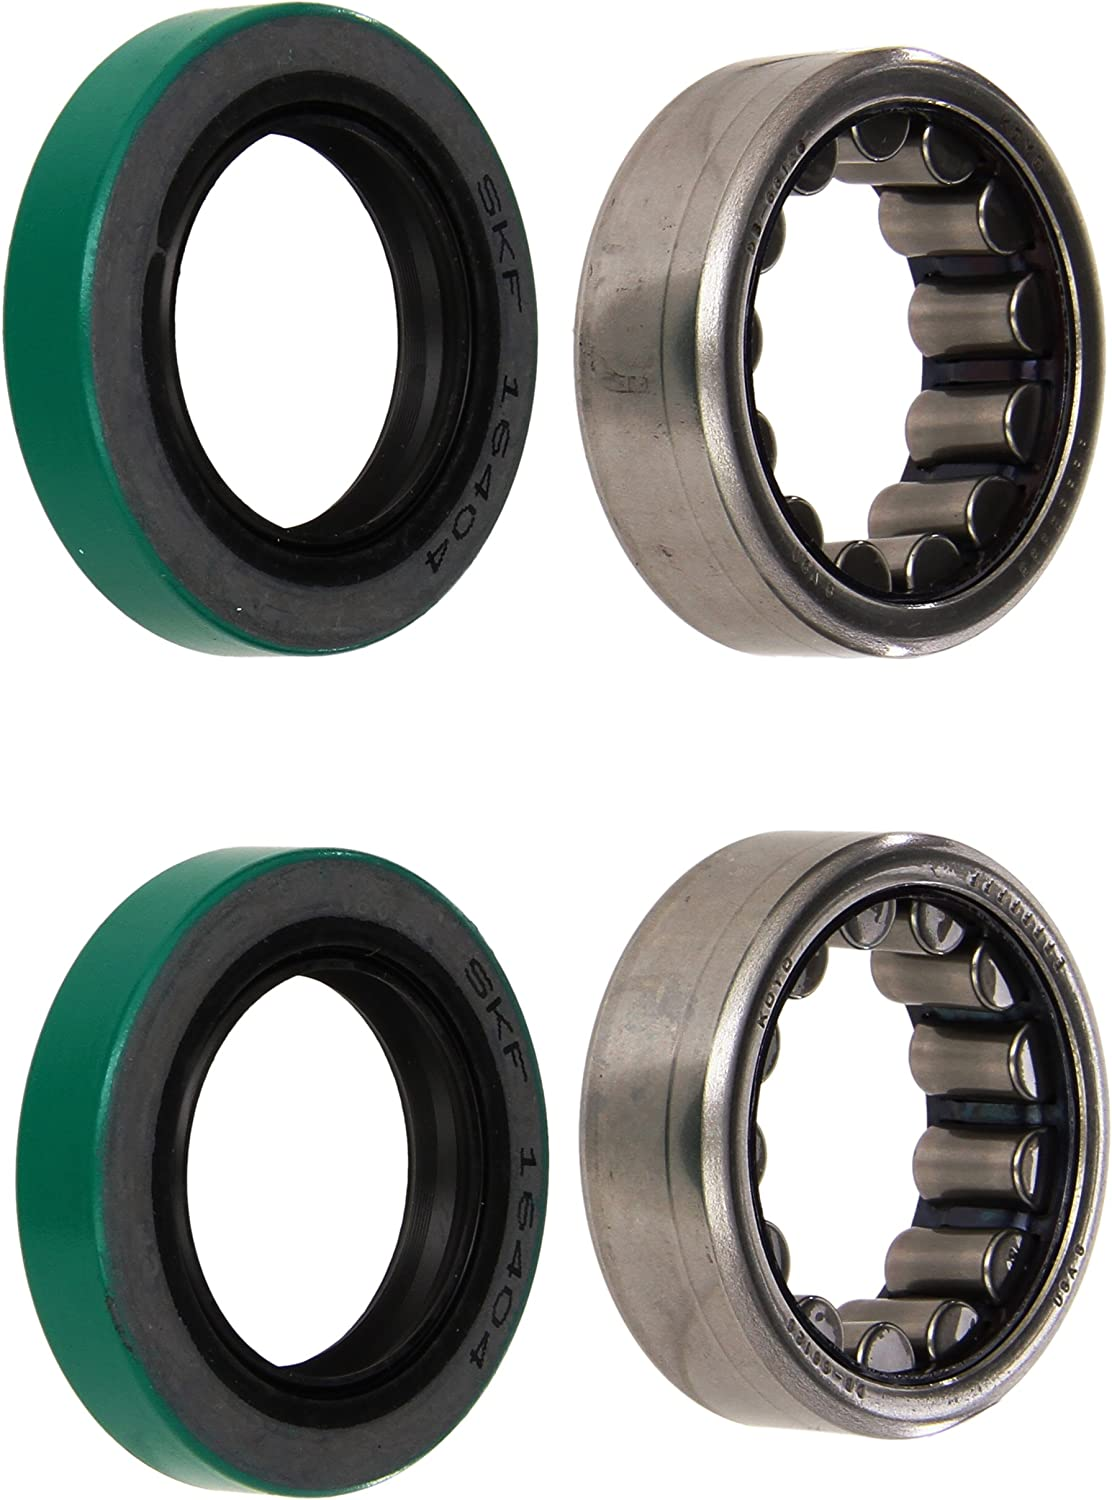 Ford Racing M-1225-B1 Bearing Don't miss the Max 62% OFF campaign Axle Kit